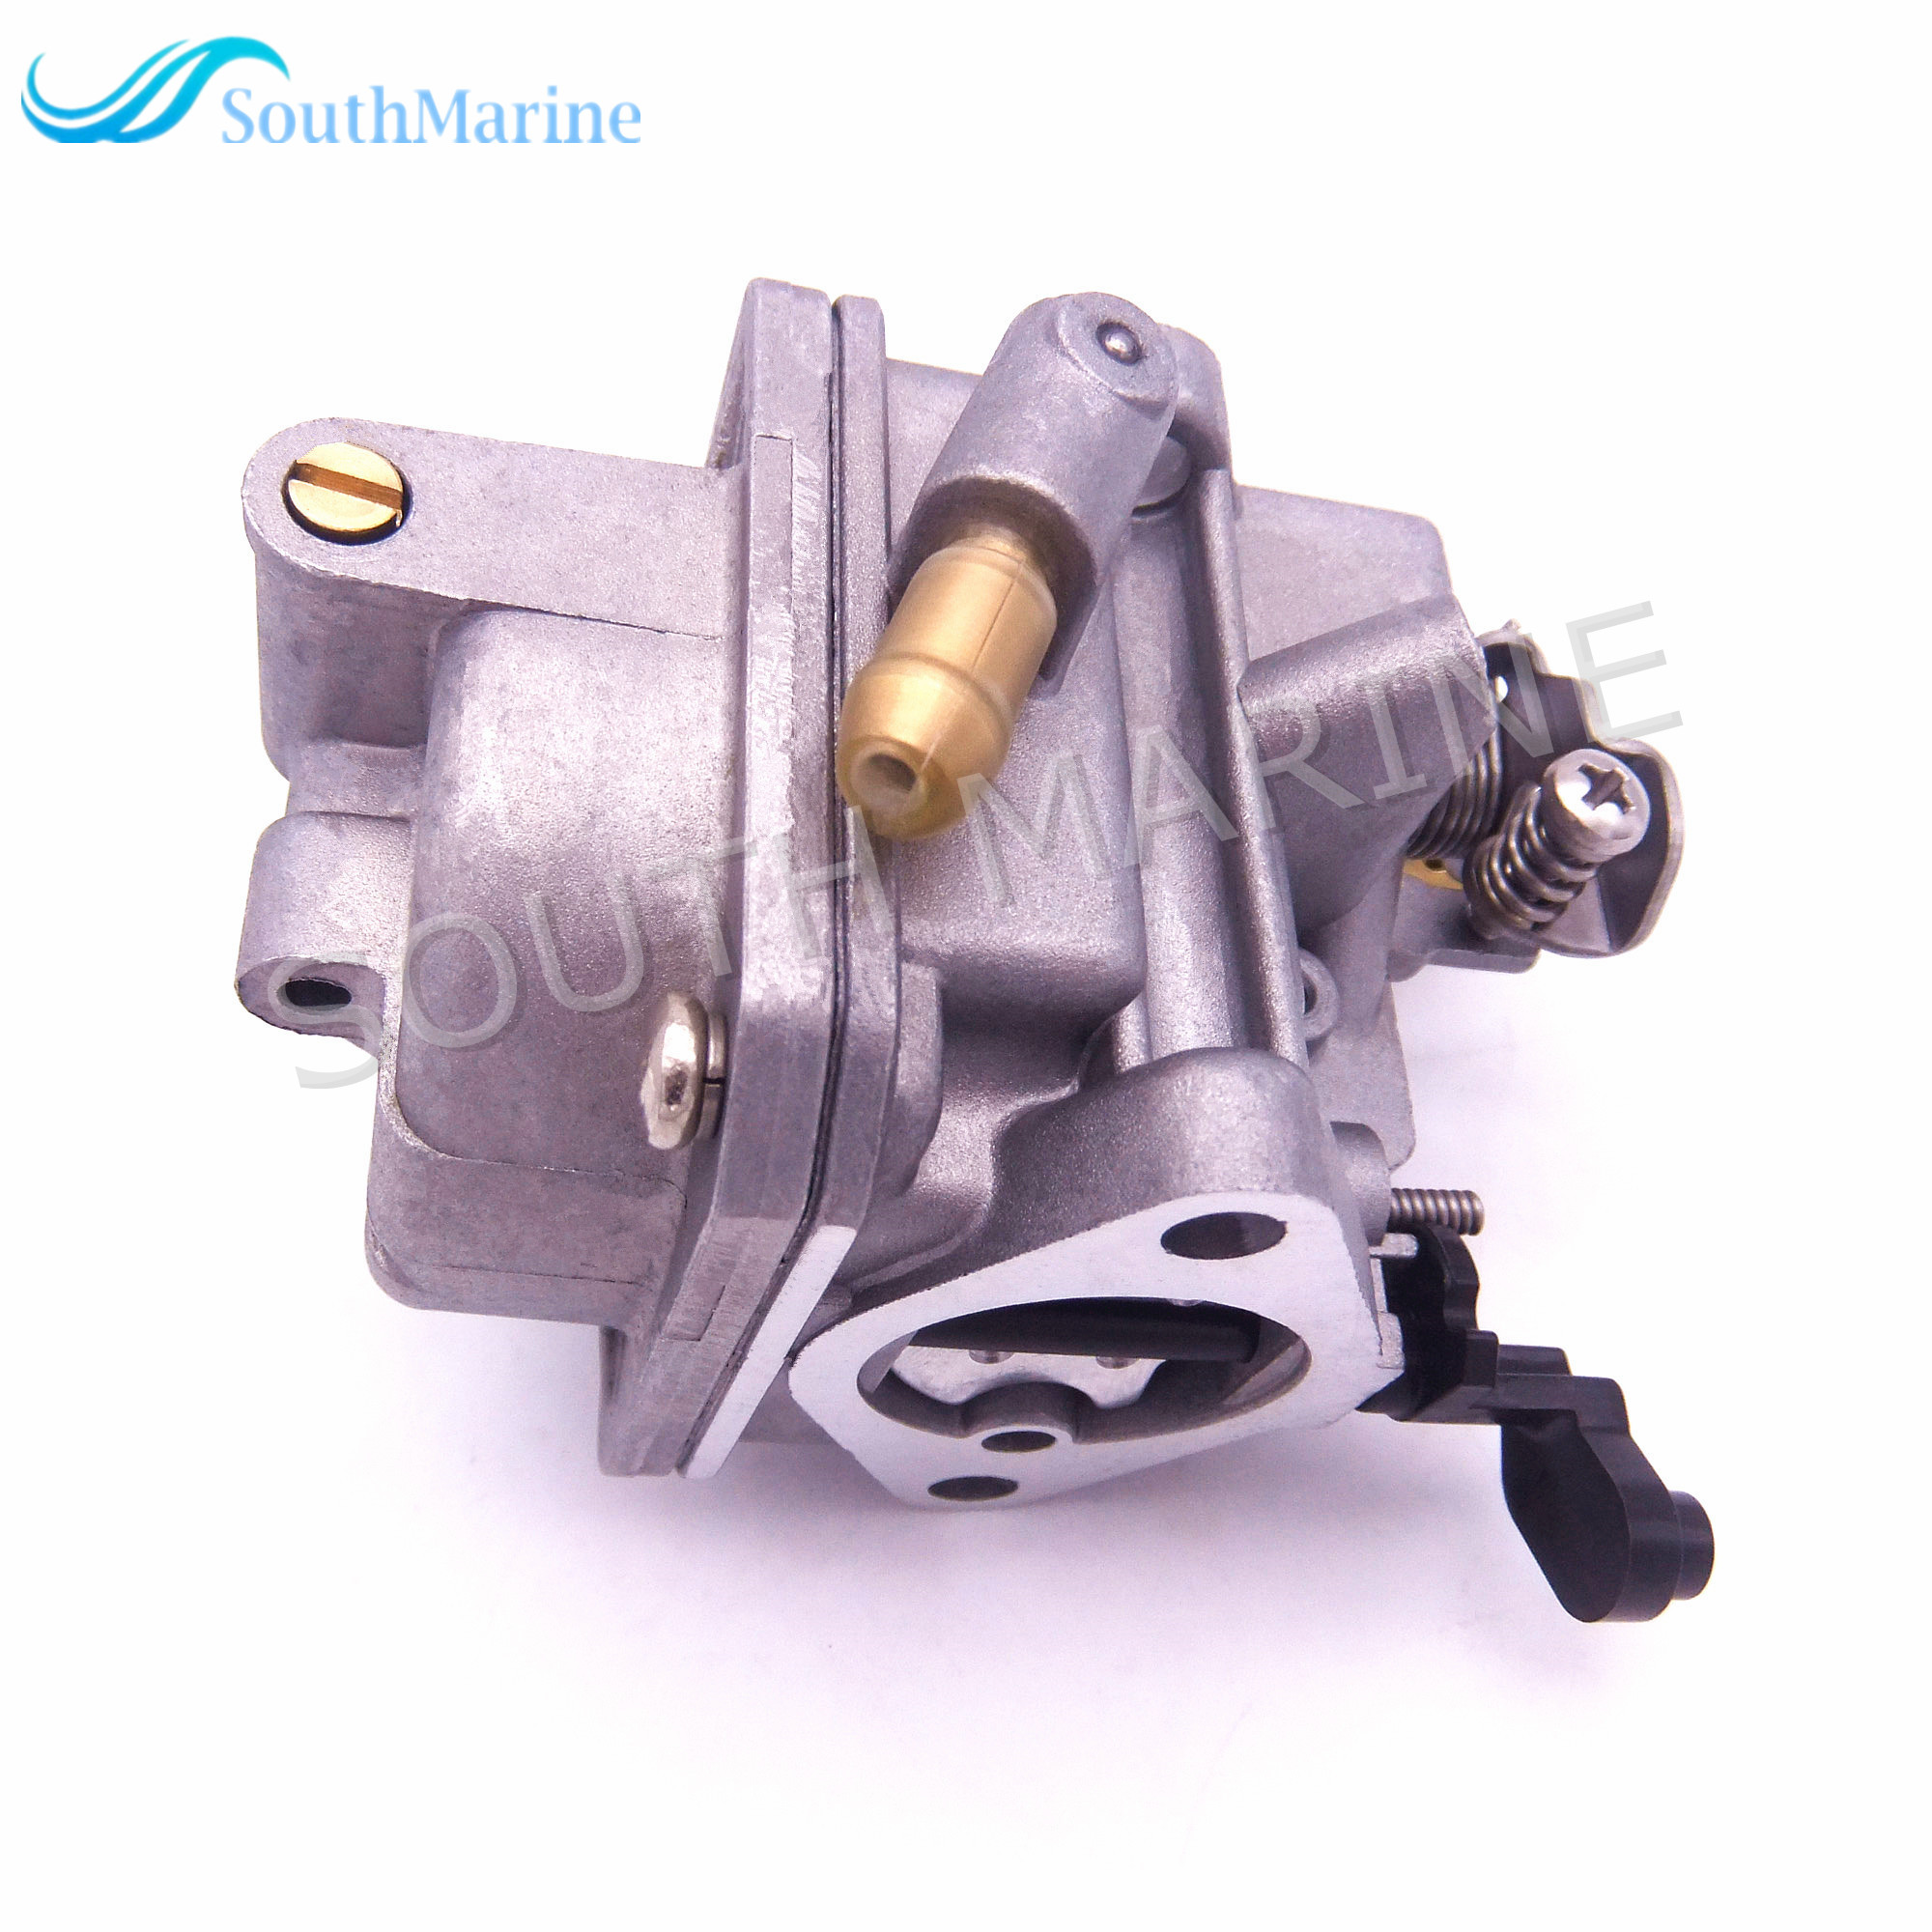 Boat Motor Carburetor Assy 6BX-14301-10 6BX-14301-11 6BX-14301-00 for Yamaha 4-stroke F6 Outboard Engine